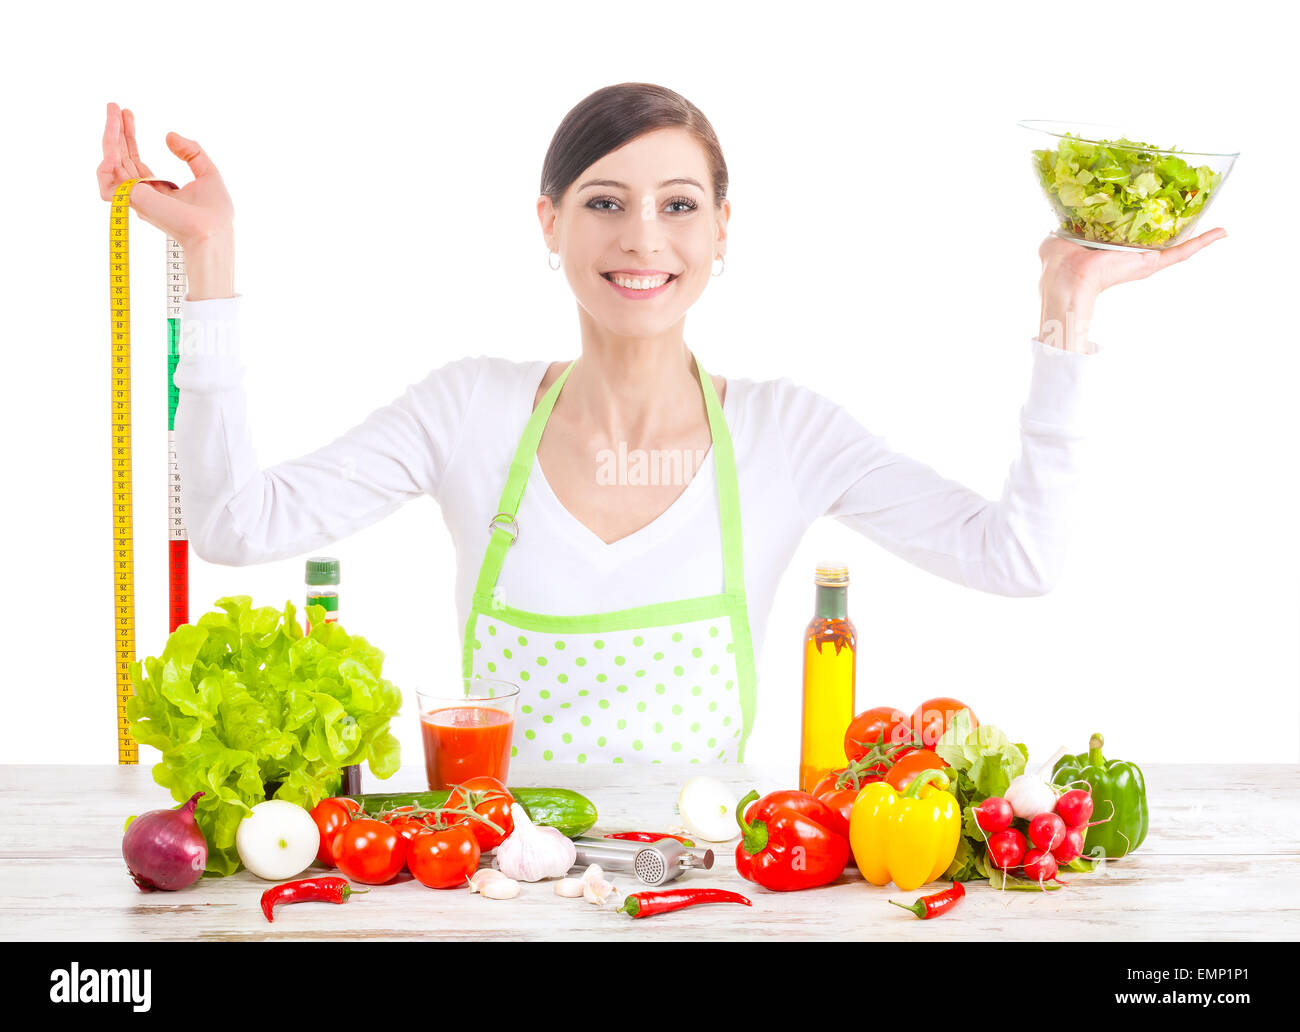 Young happy woman with salad and measuring tape, healthy food and diet concept. - Stock Image